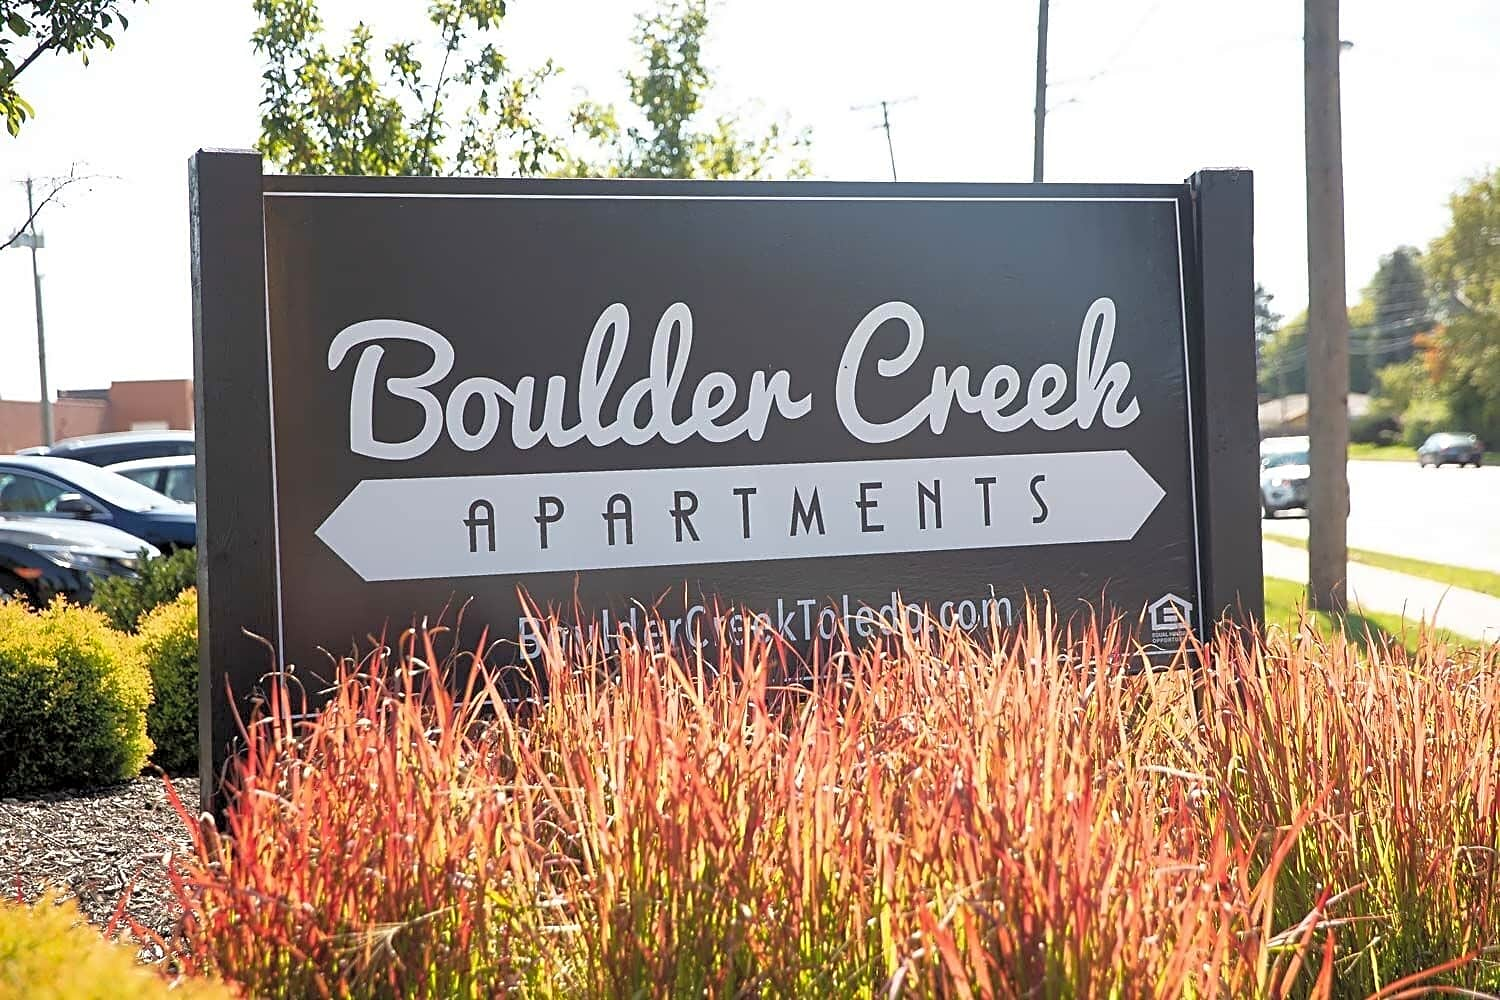 Apartments Near UT Boulder Creek Apartment Homes for University of Toledo Students in Toledo, OH